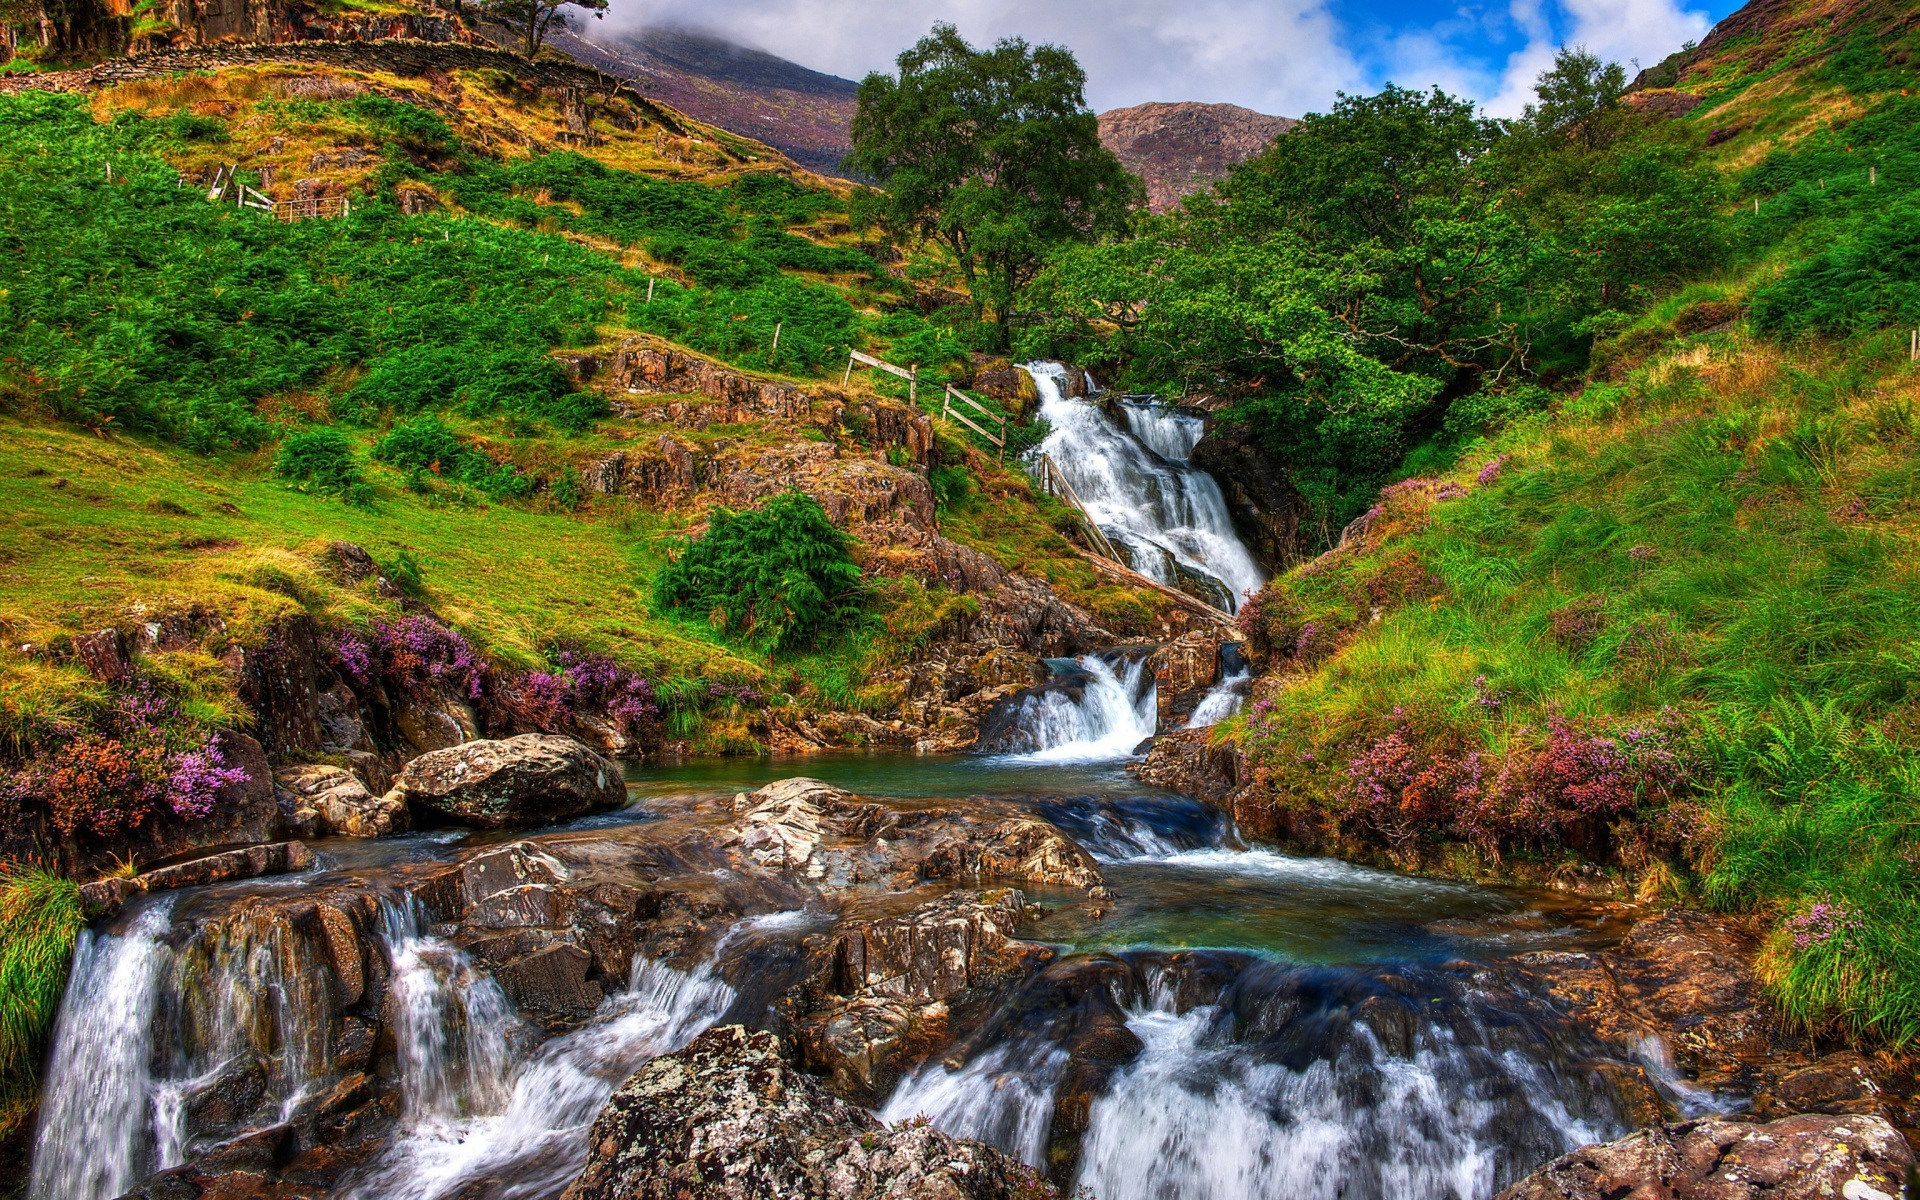 Snowdonia National Park Waterfall Photo